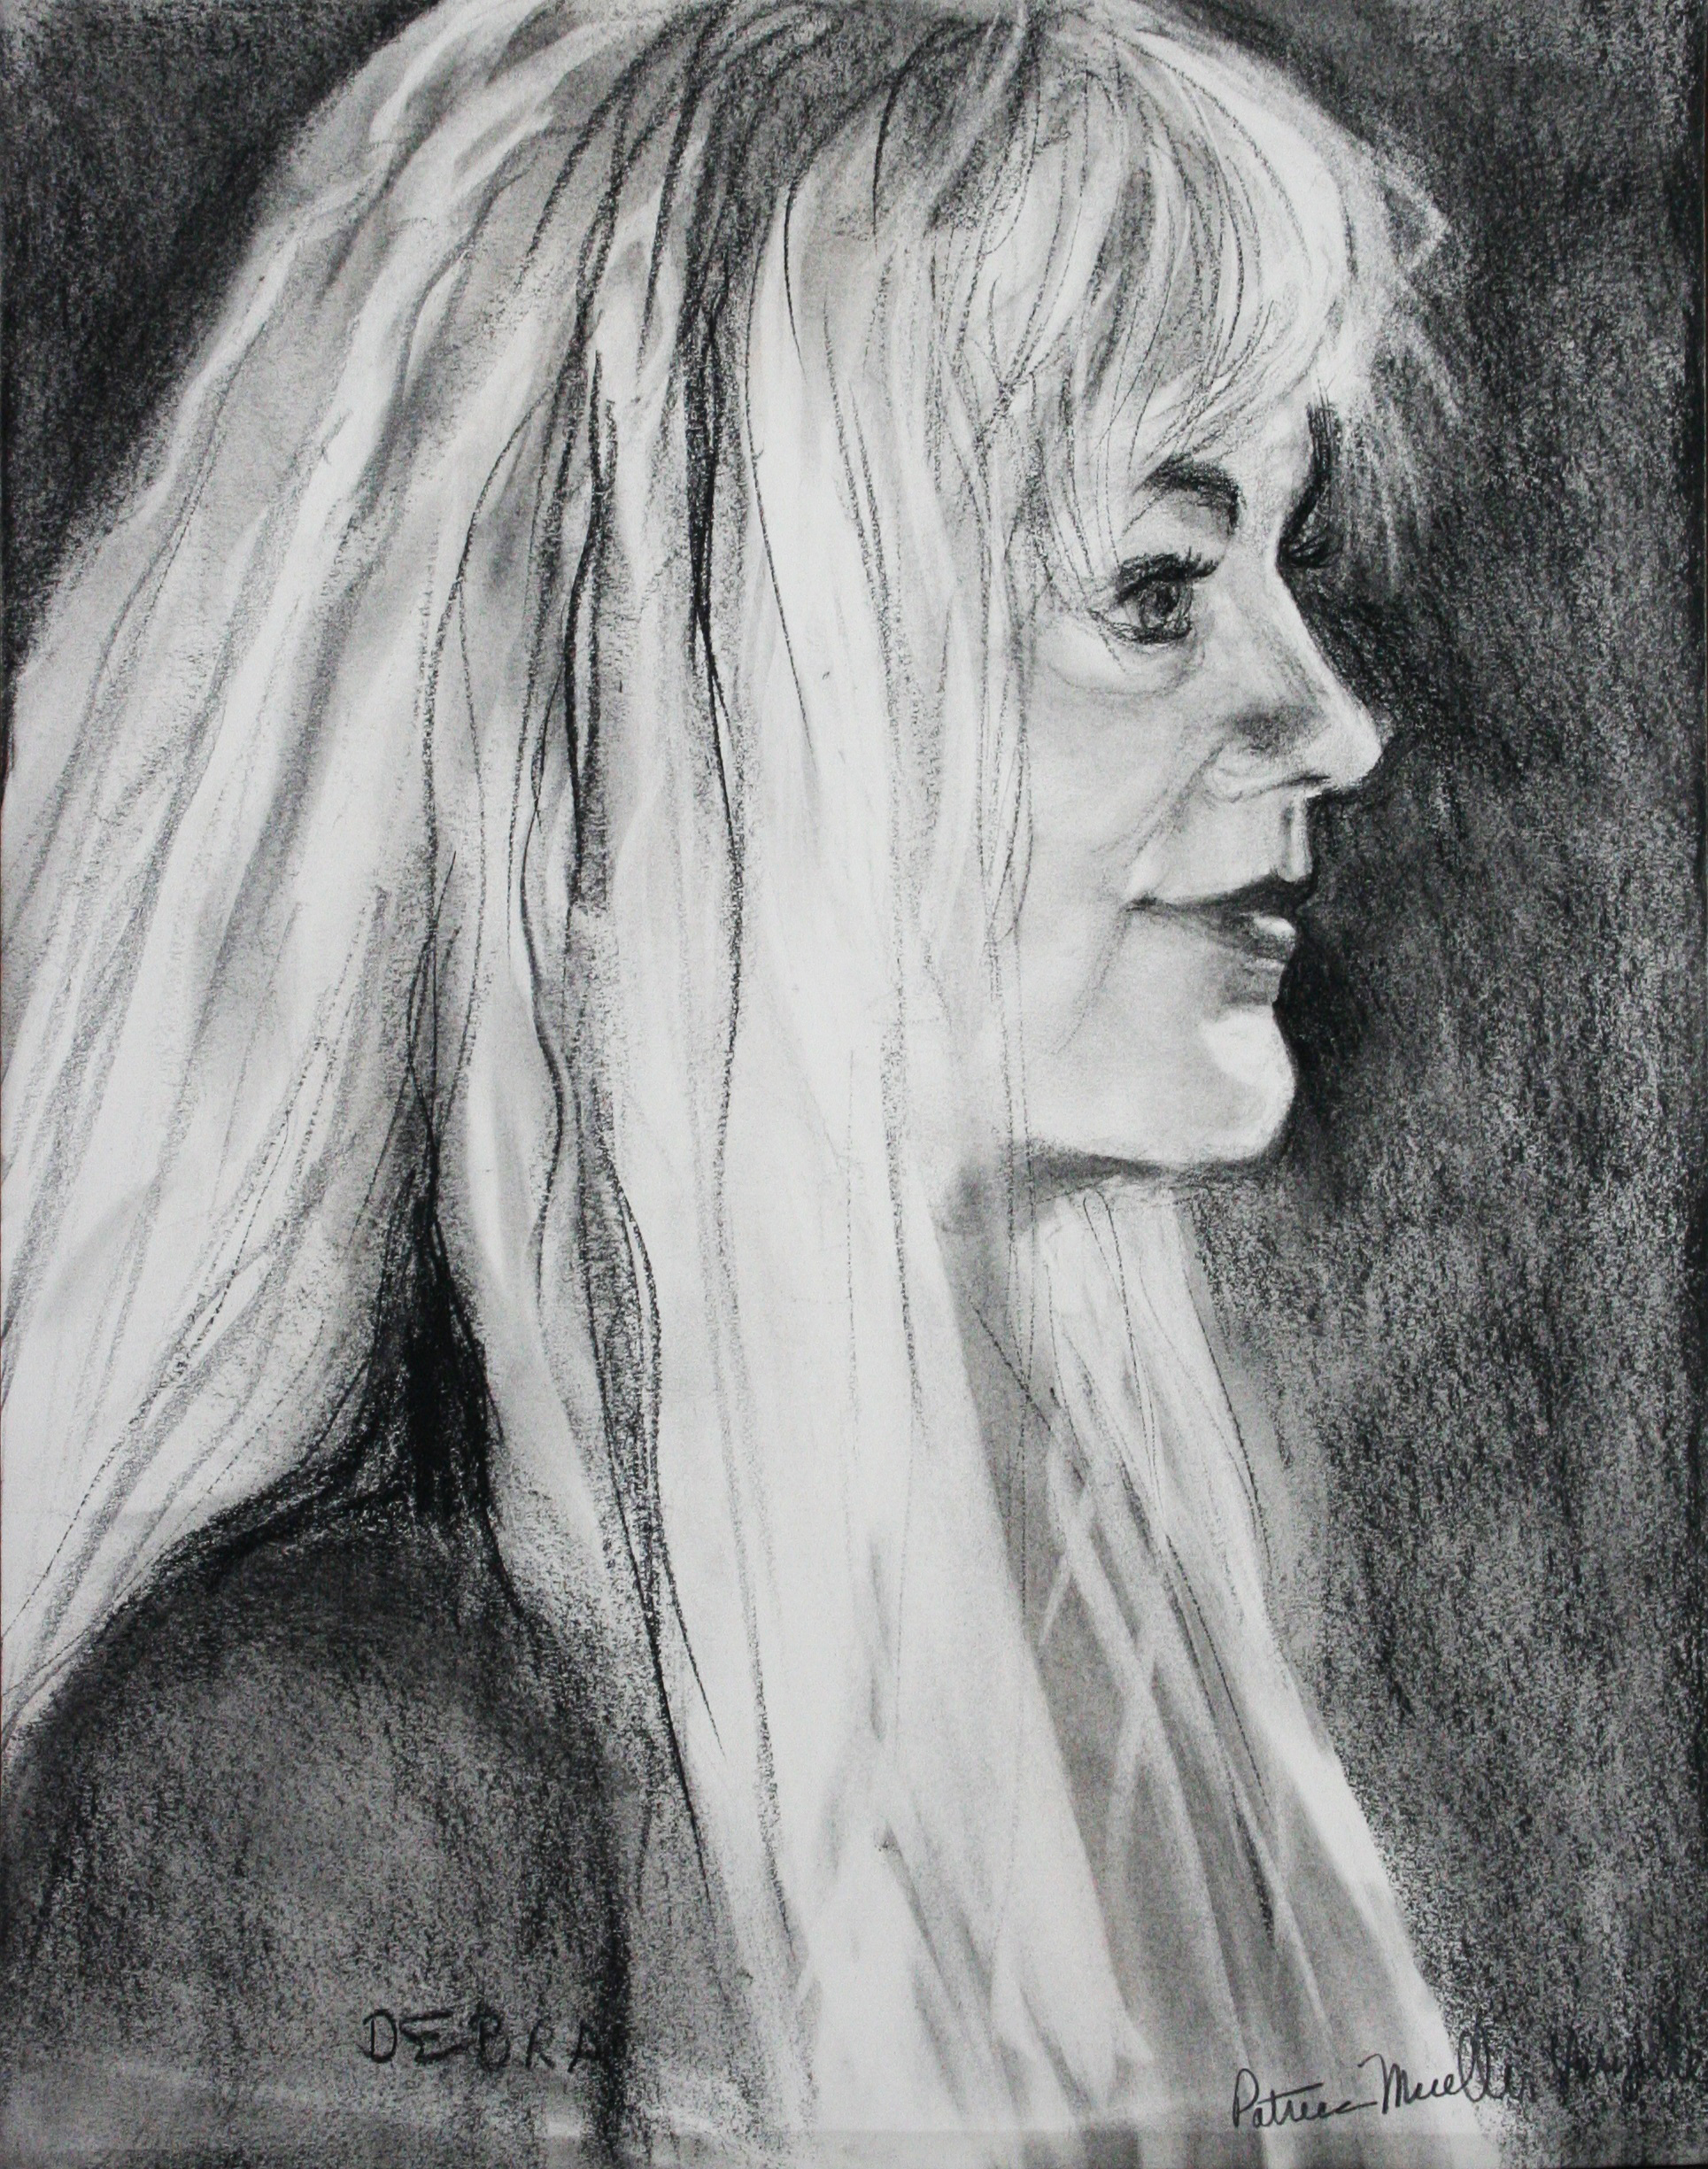 Patrice Varzelle did this 2-hour drawing.